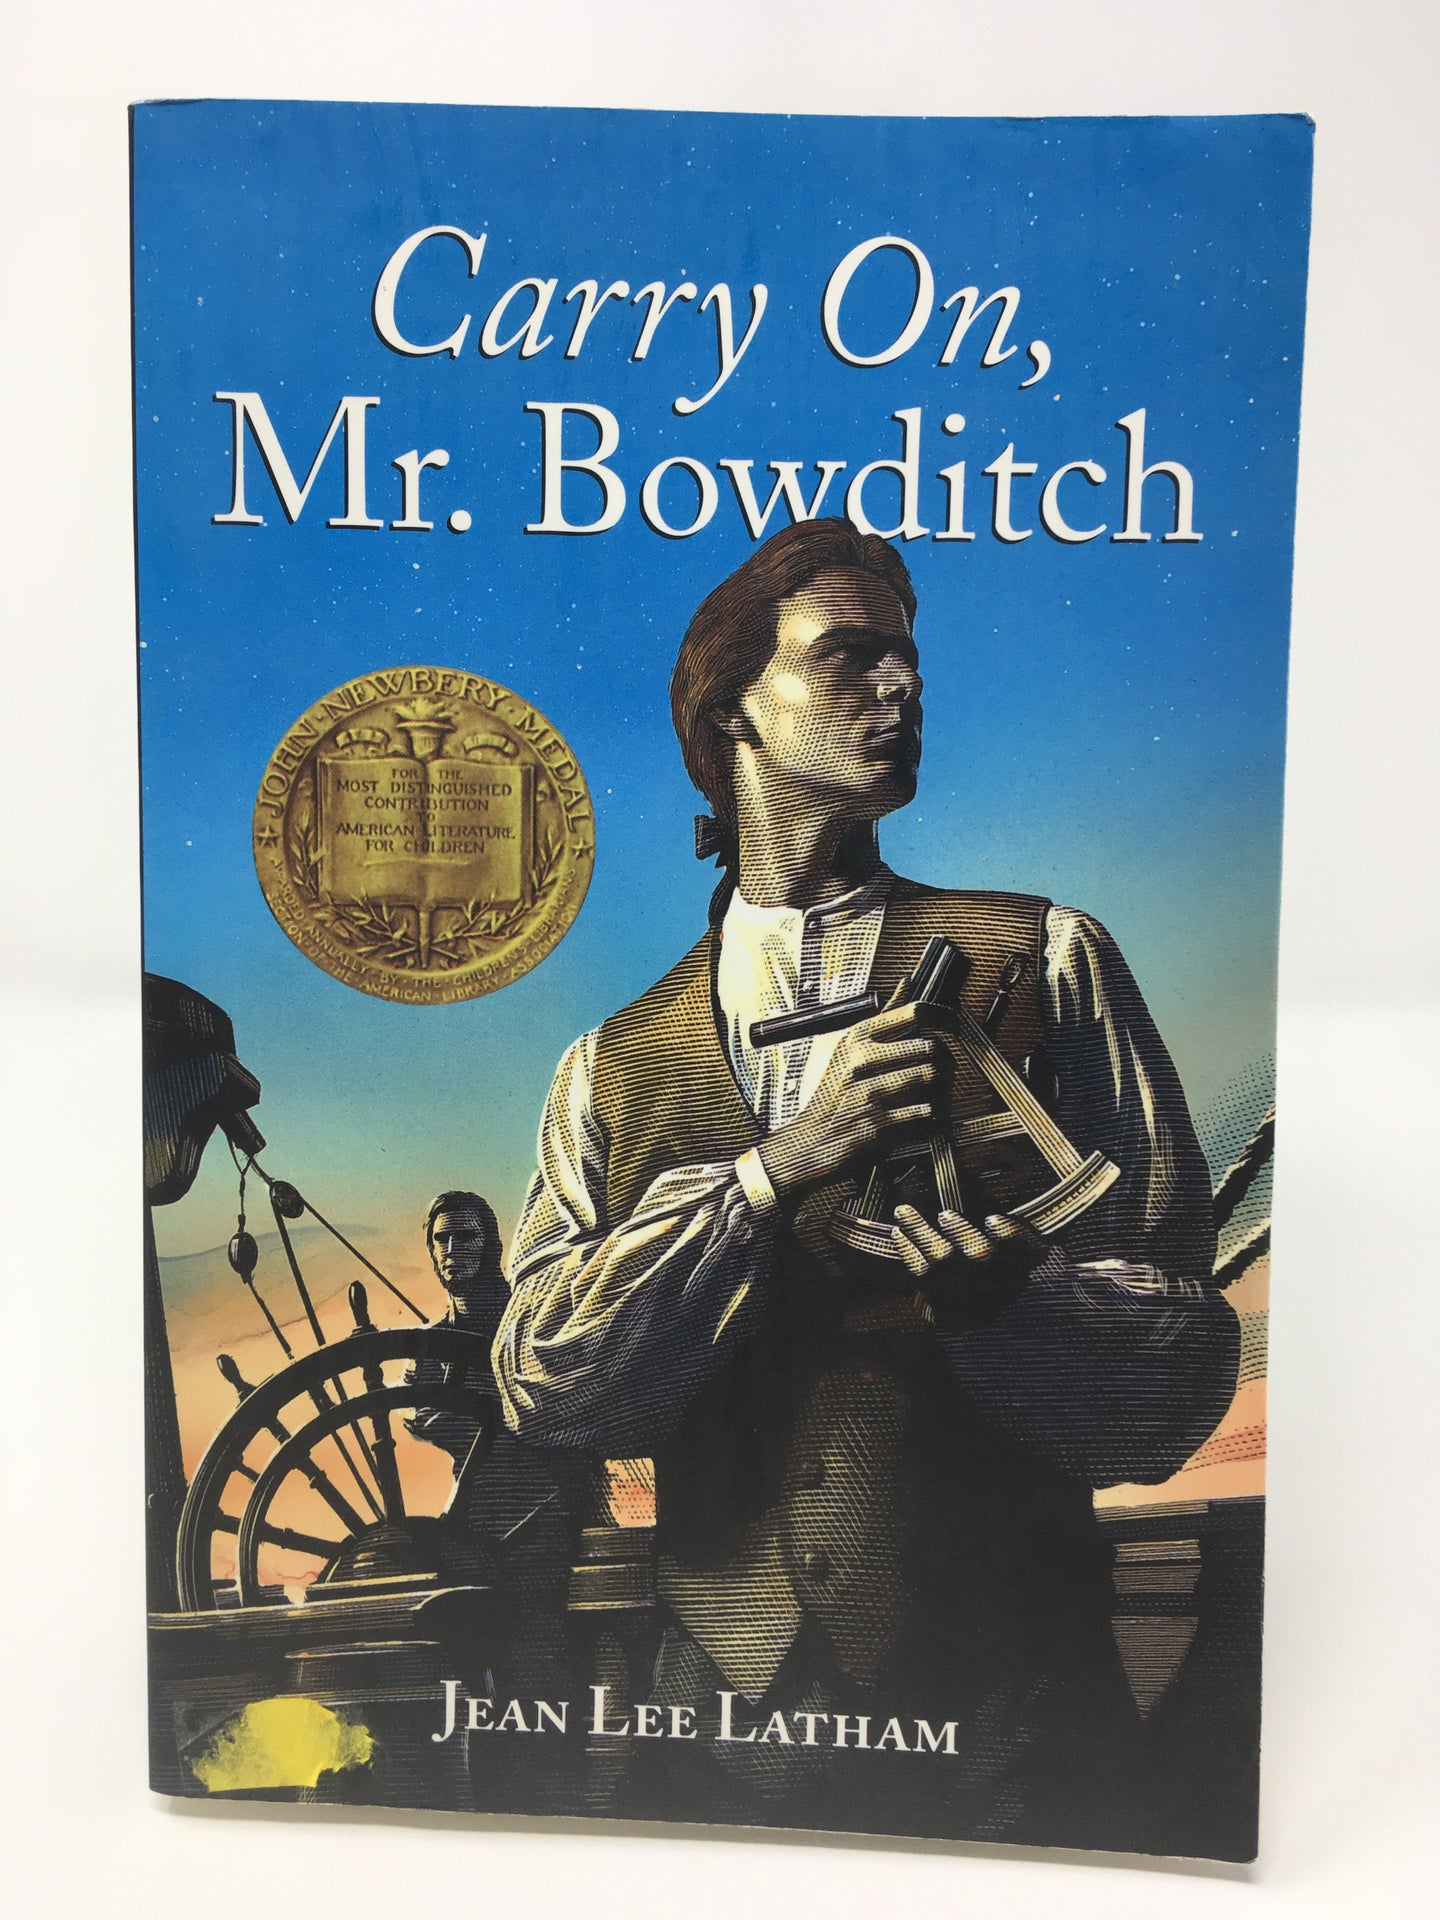 Carry On, Mr. Bowditch by Jean Lee Latham (Used-like new) - Little Green Schoolhouse Books